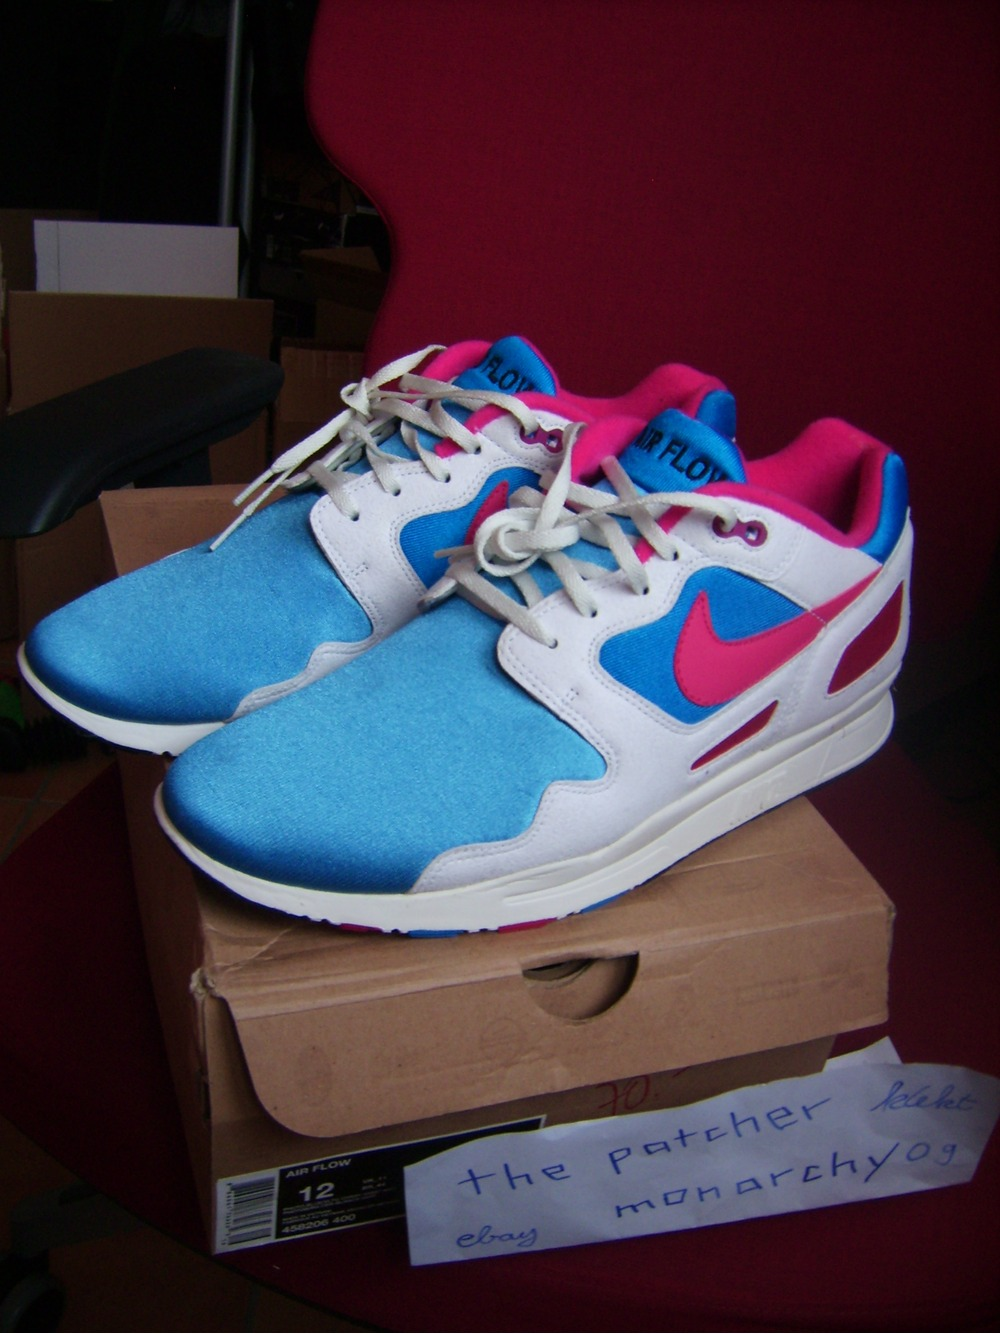 new styles 4f2d4 cd4f7 buy nike kd 4 n7 Wood siding.With excellent.Finish line kobe blue .